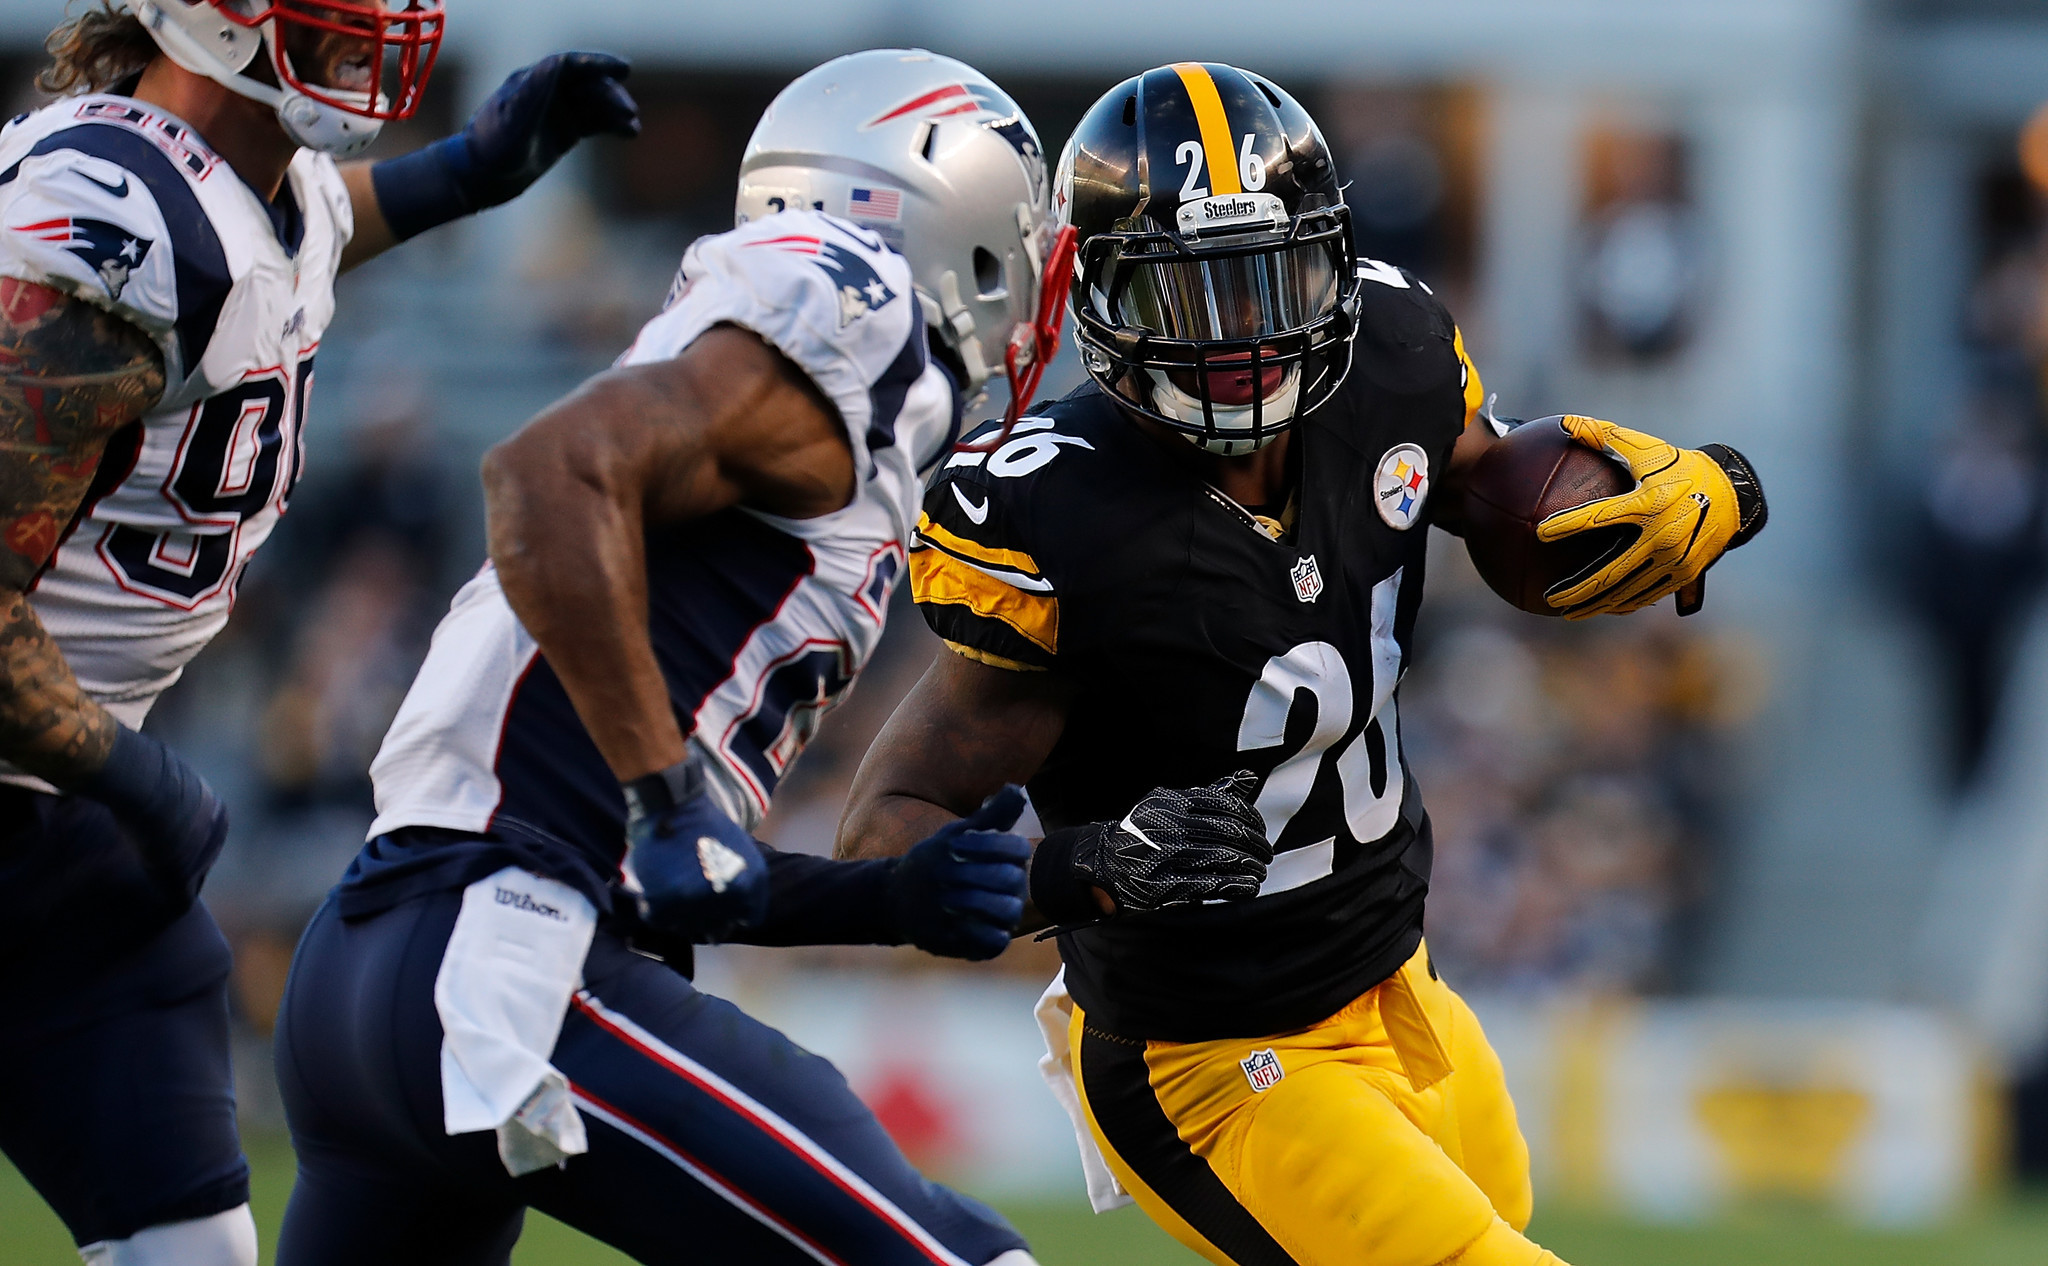 Ravens worried about containing Steelers running back Le Veon Bell